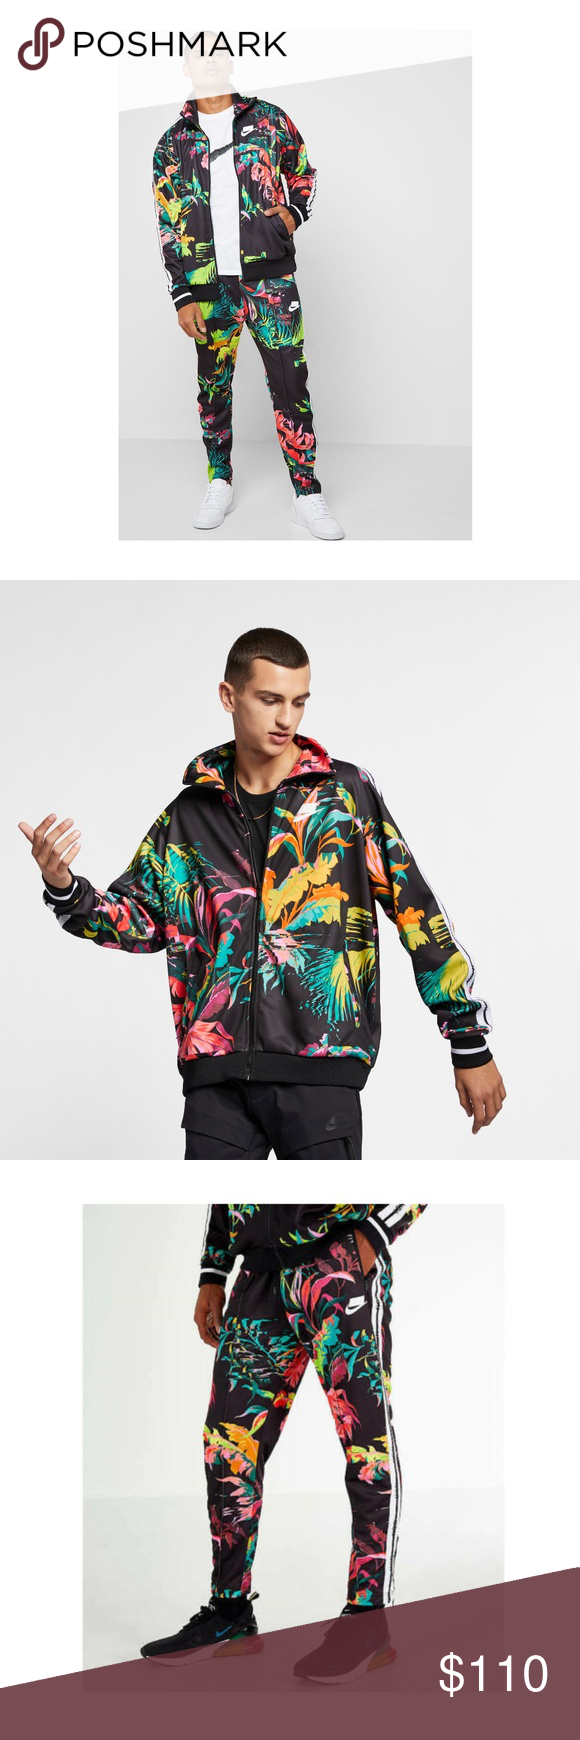 Nike track jacket in black floral print